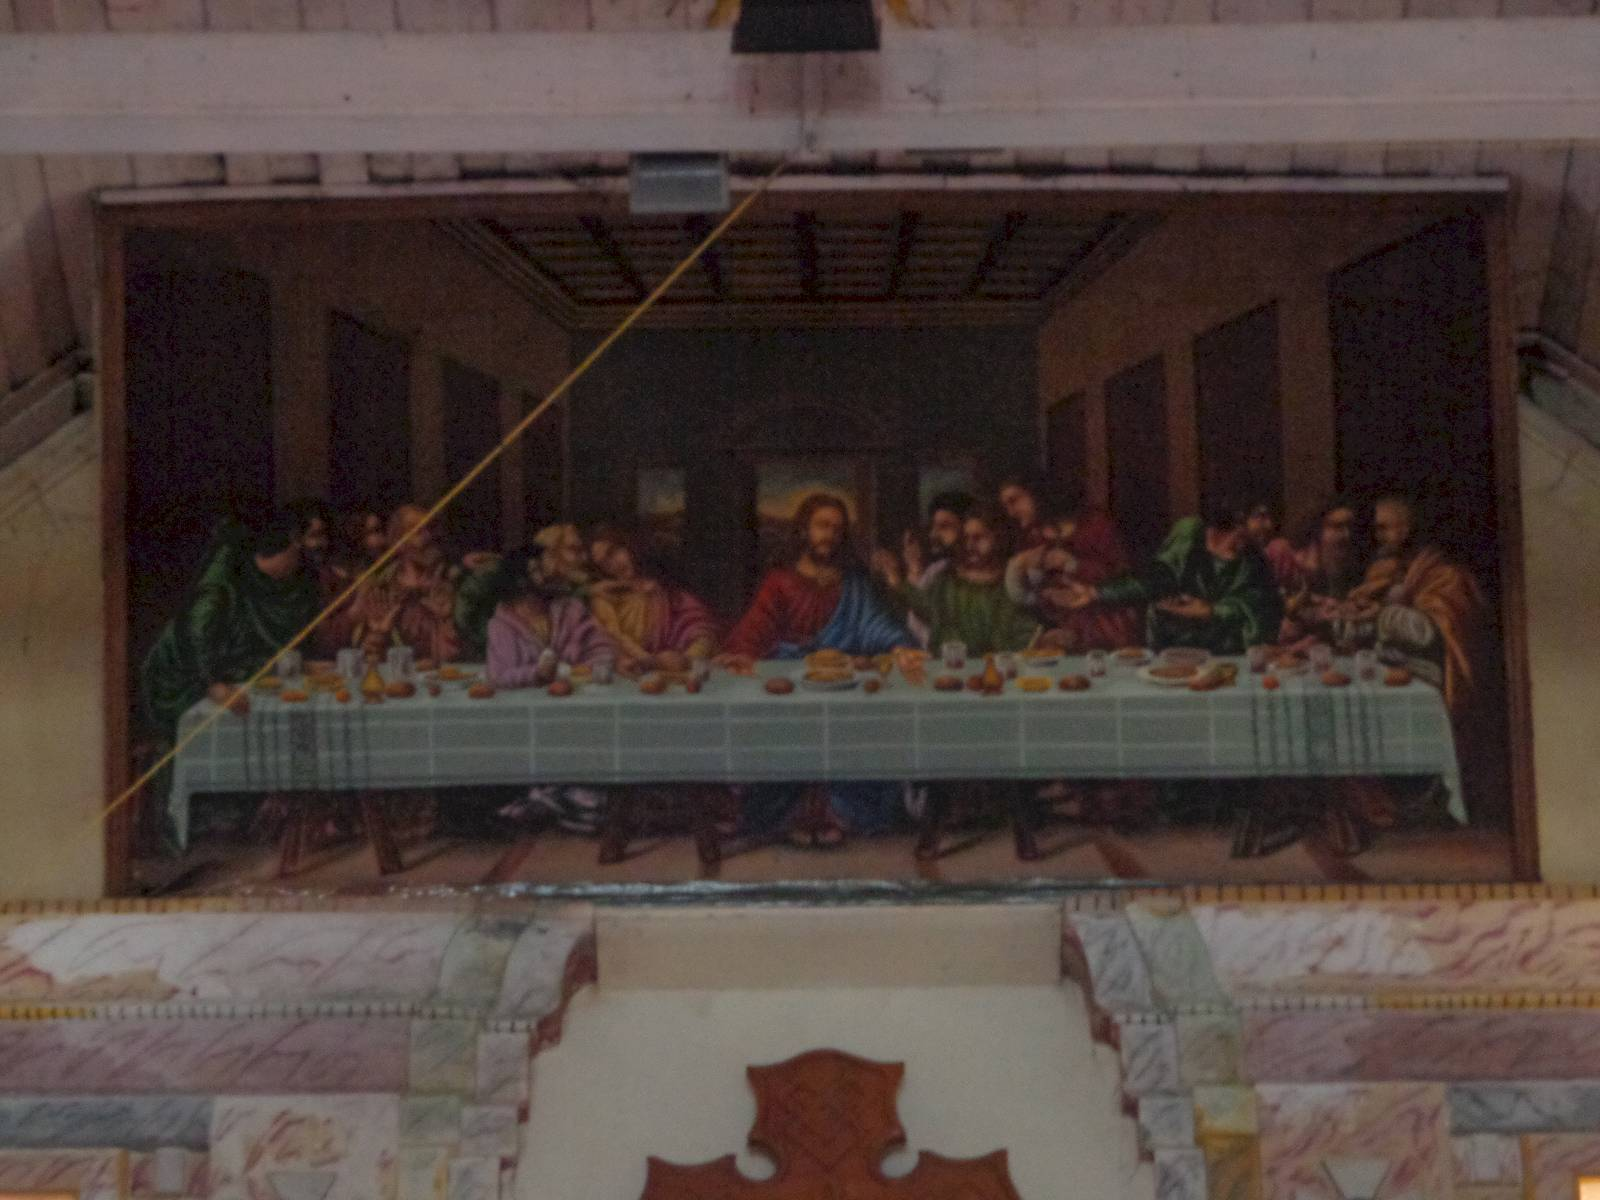 A depiction of The Last Supper was painted high up  on the wall behind the alter.